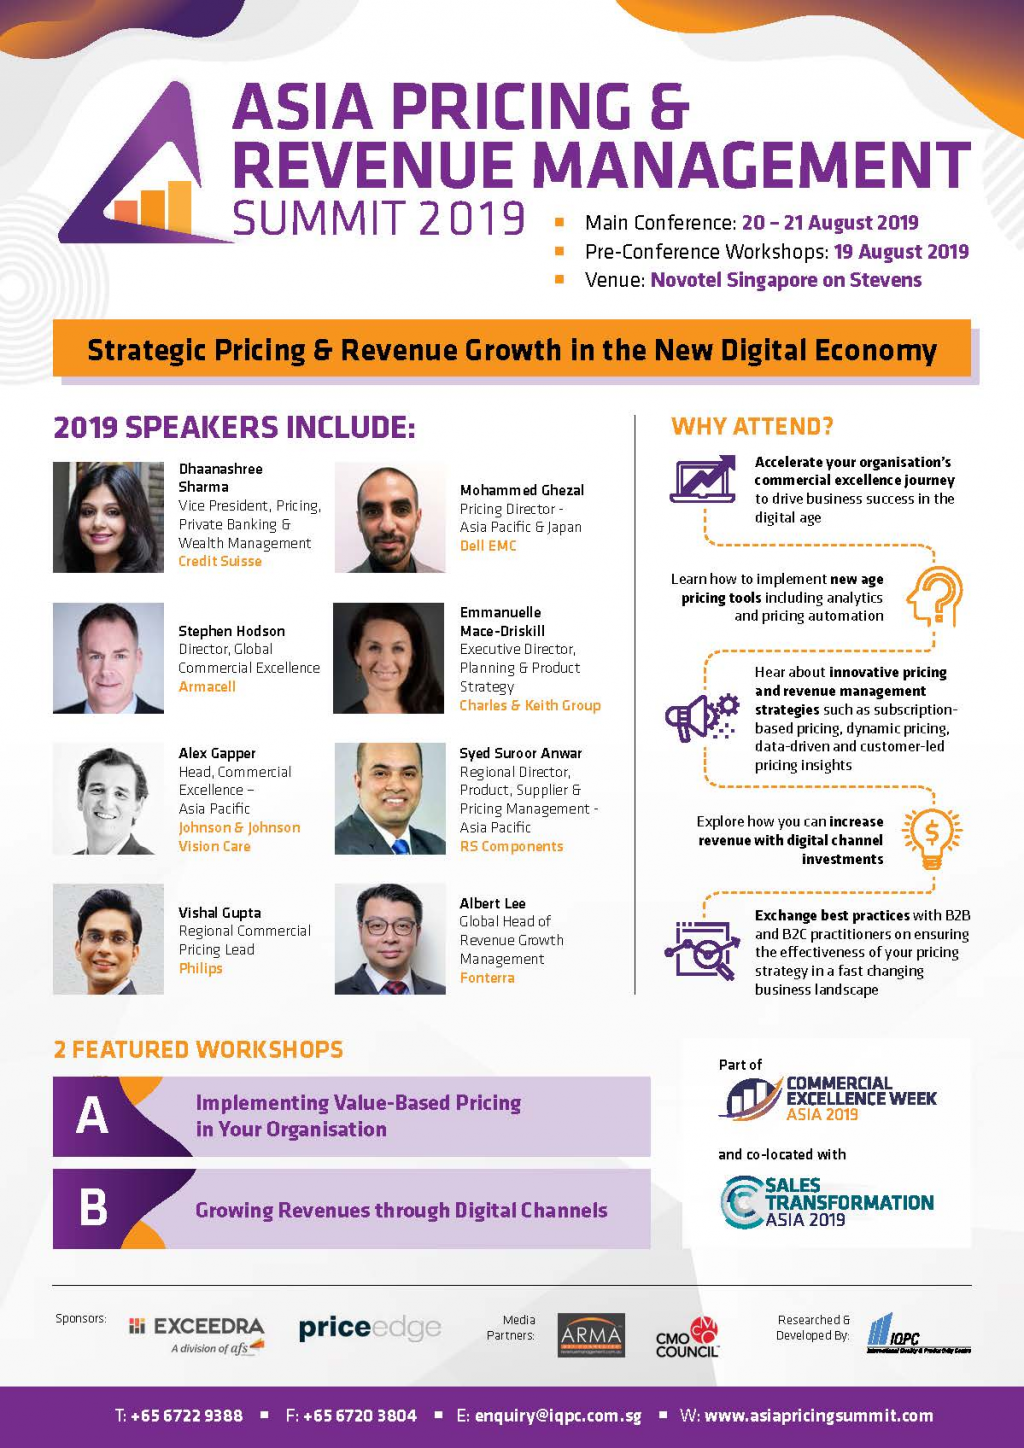 View the 5th Annual Asia Pricing & Revenue Management Summit Brochure